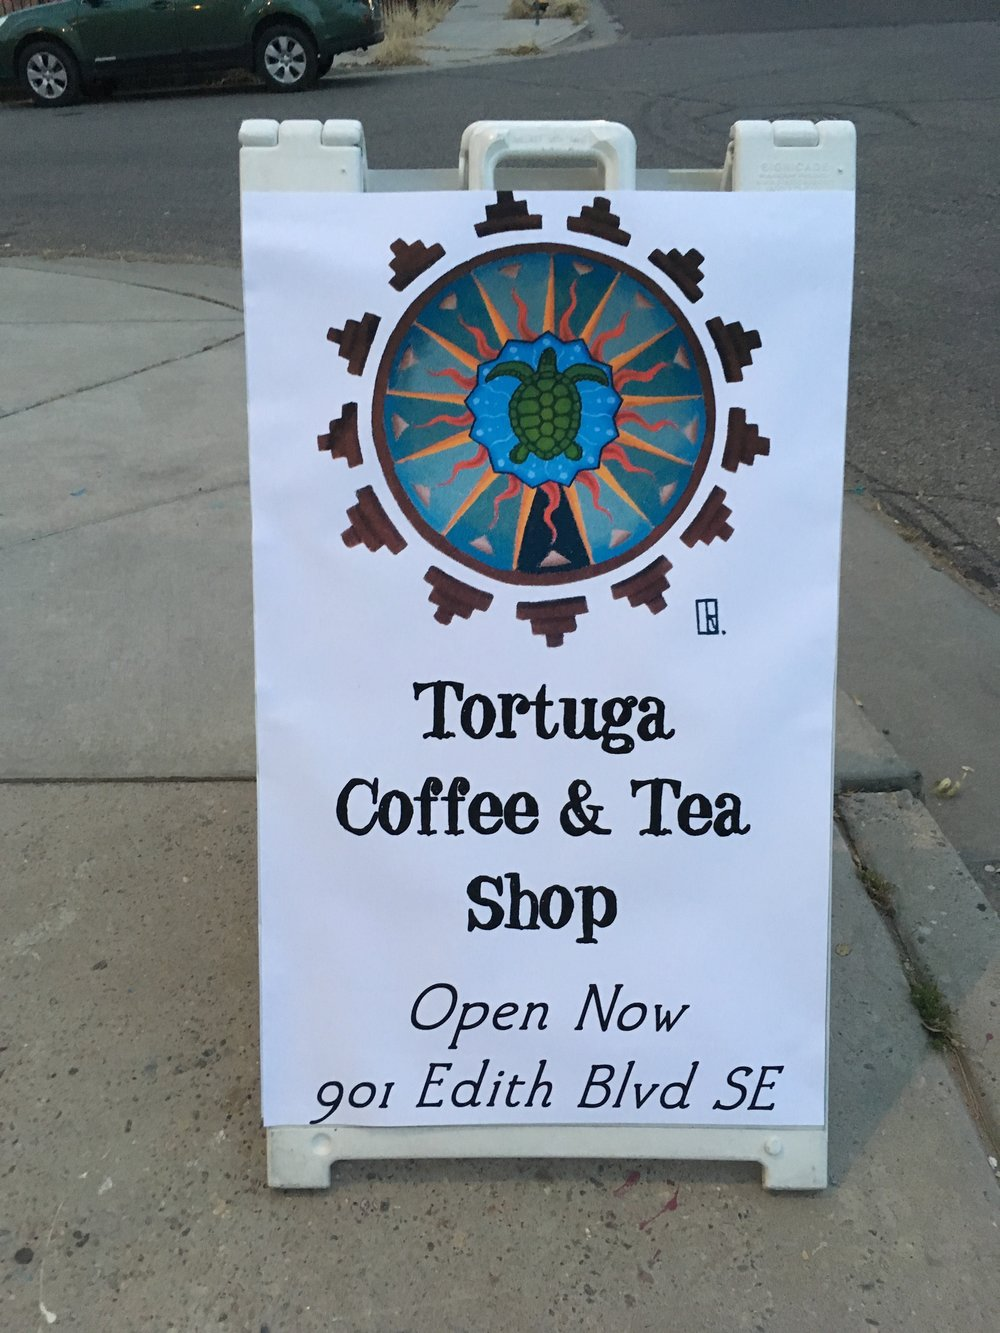 Coffee & Tea @ Tortuga - Open hours Friday, Saturday & Sunday 7-10am